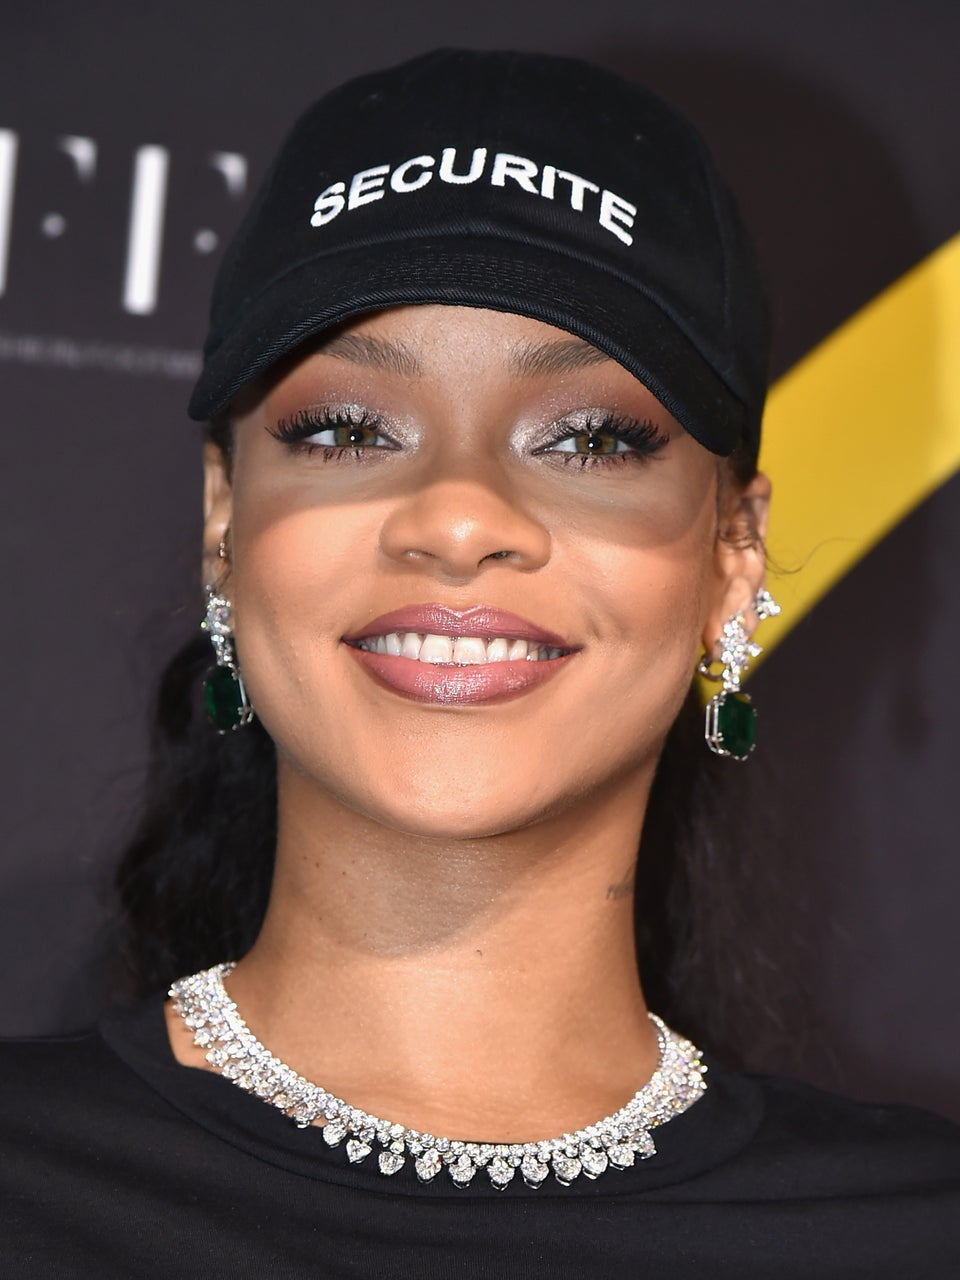 Rihanna Delivers Cool Girl Style While Accepting 'Shoe of the Year' Award